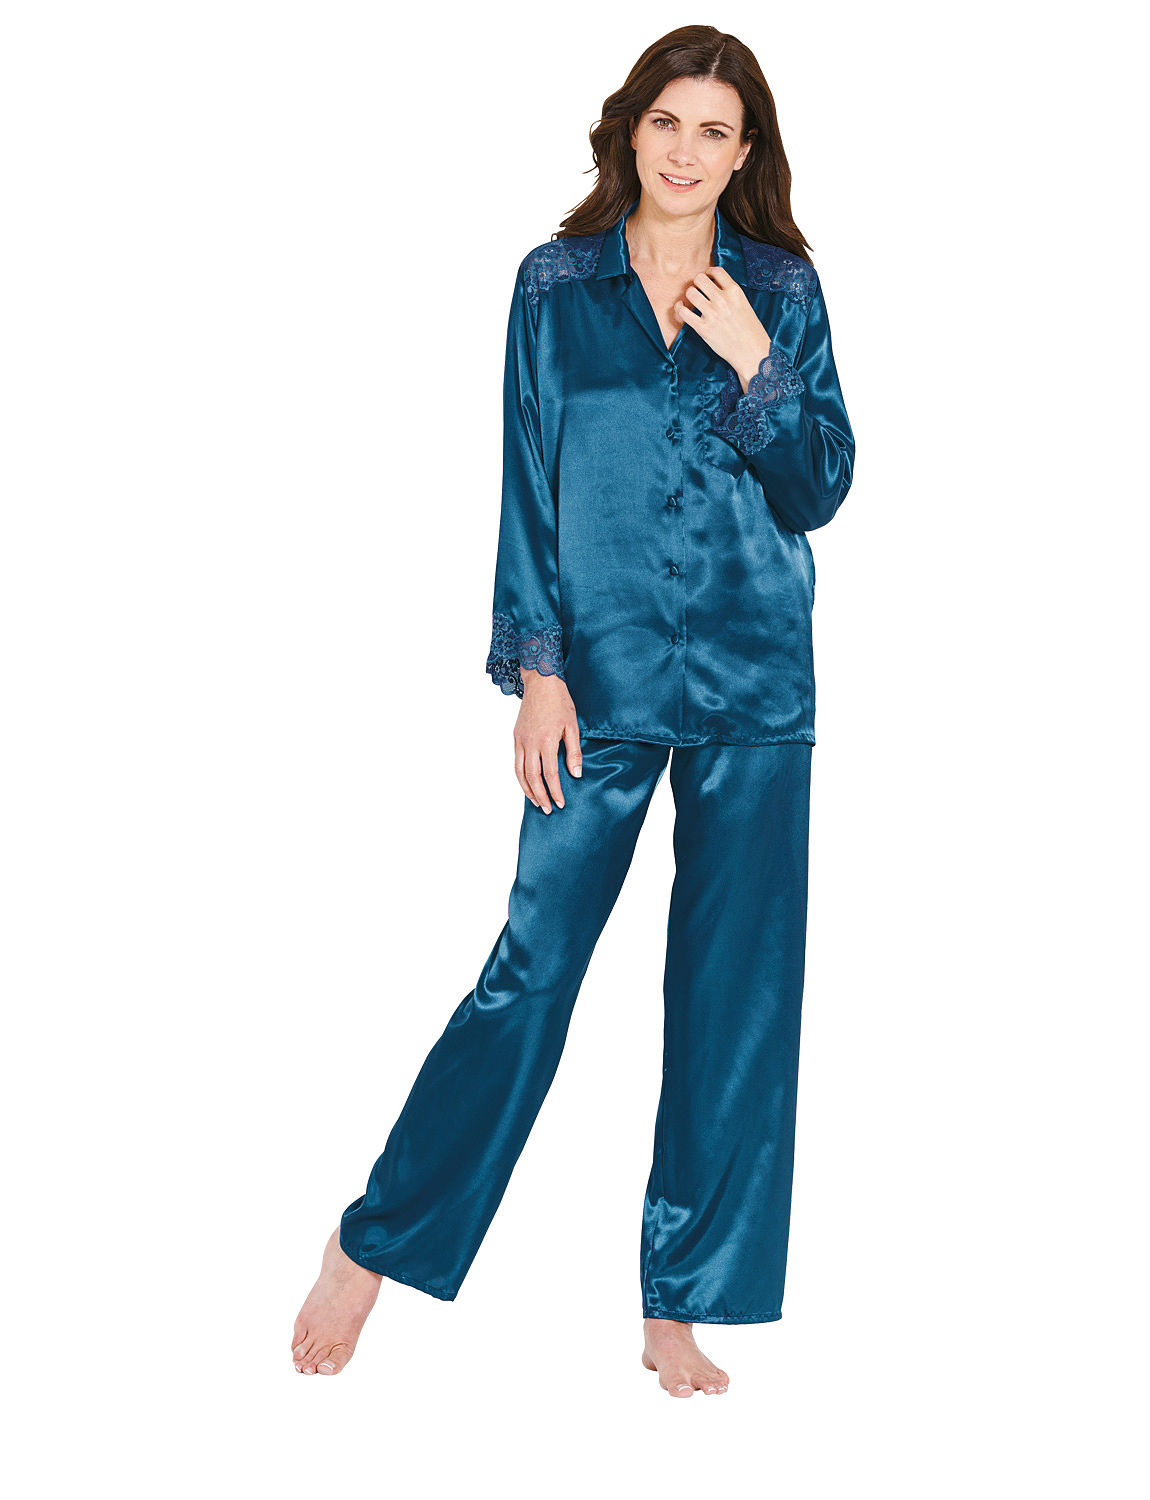 Satin Pyjamas: Satin Pyjama Sets, Mens & Womens Satin Pyjamas. Browse this great range of satin pyjamas which we've brought together from the best UK Clothing shops for you to choose from.